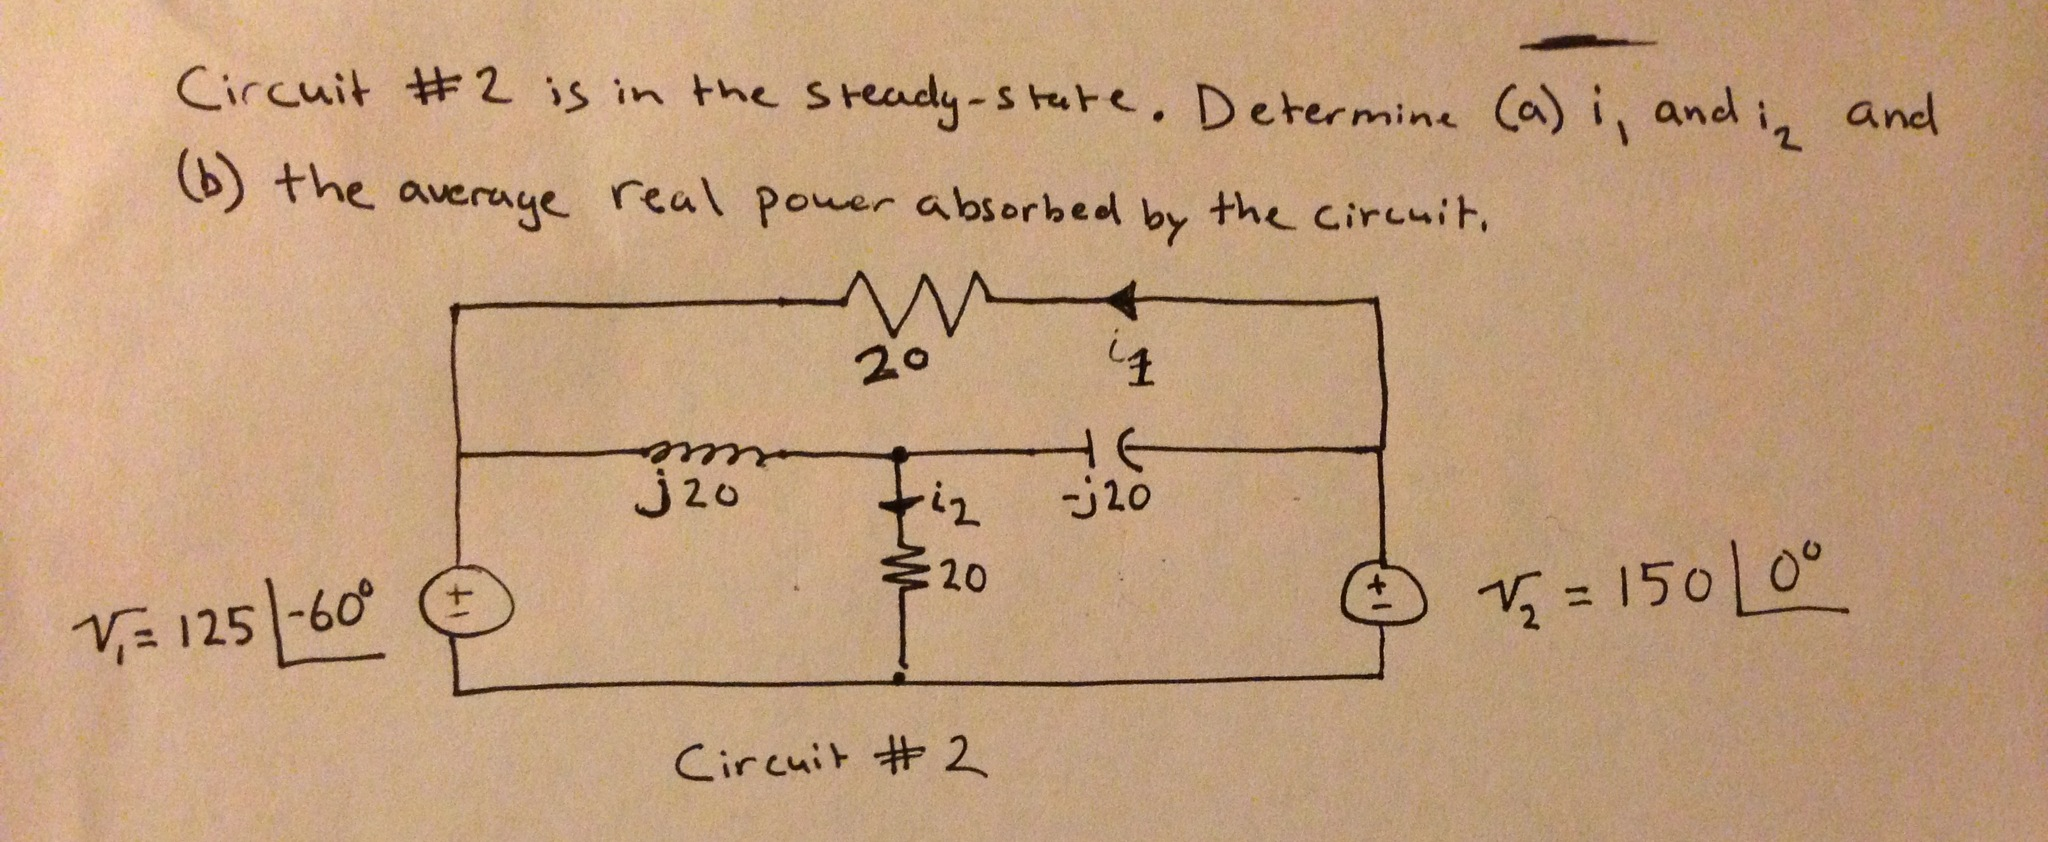 Circuit #2 is in the steady-state. Determine (a) i